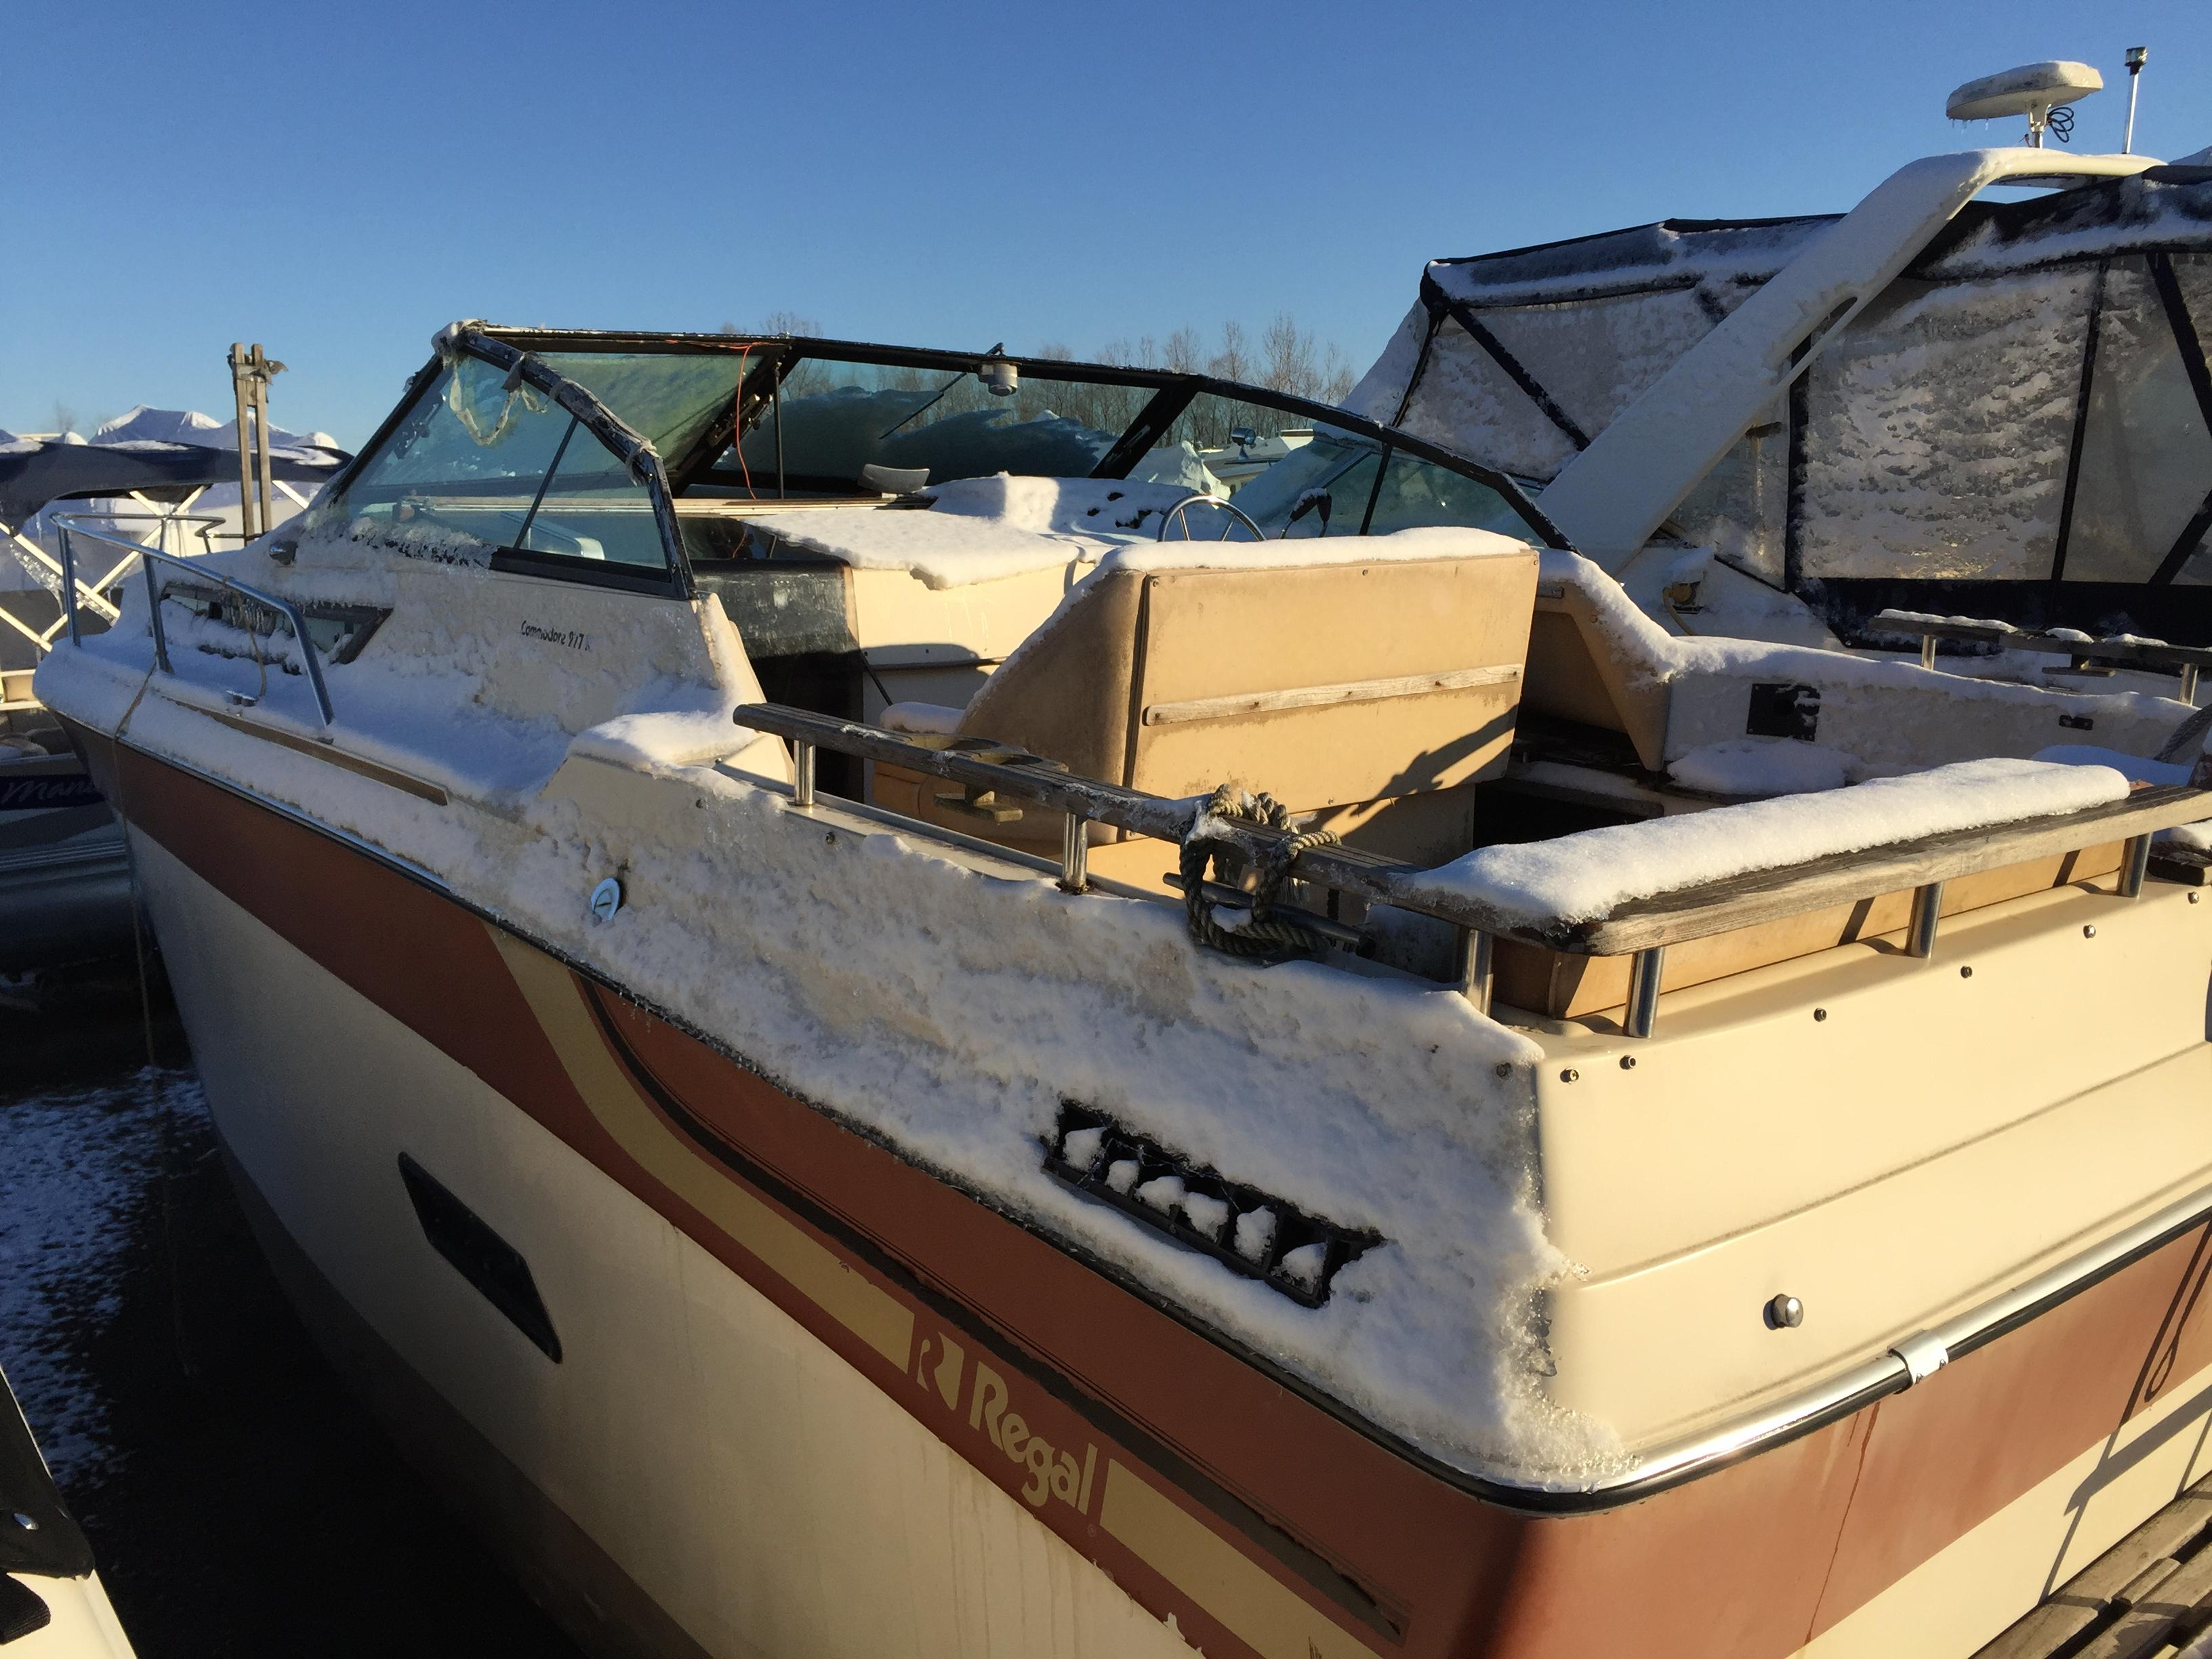 5461865_20151128141053131_1_XLARGE&w=3264&h=2448&t=1448748786000 1996 regal 322 commodore power boat for sale www yachtworld com Regal Commodore 402 at aneh.co